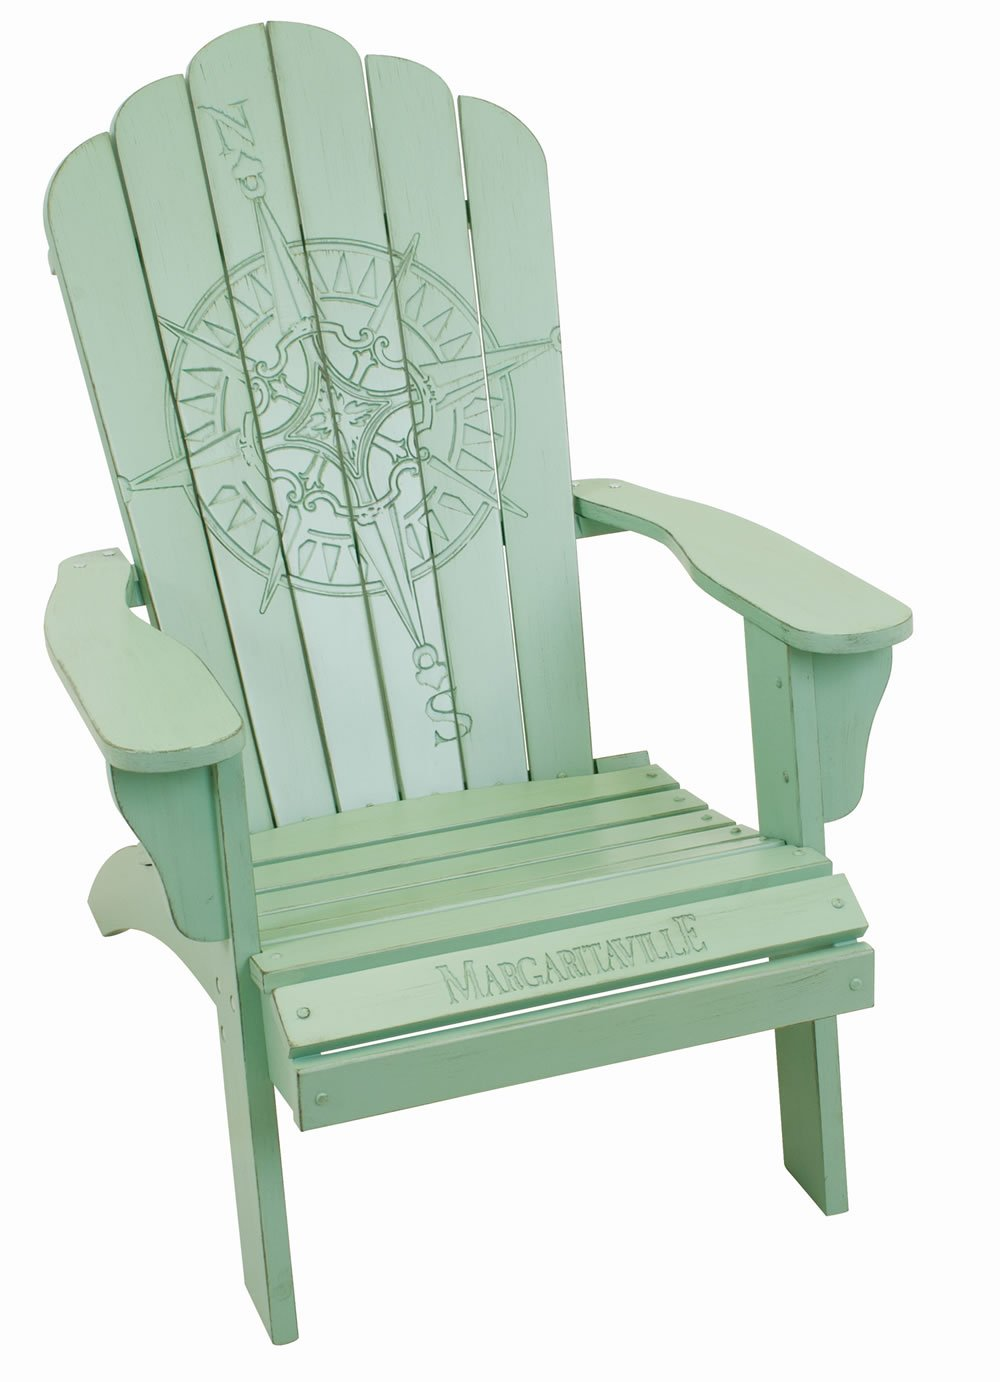 Jimmy Buffett Adirondack Chairs.Margaritaville Wood Carved Compass Rose Green Adirondack